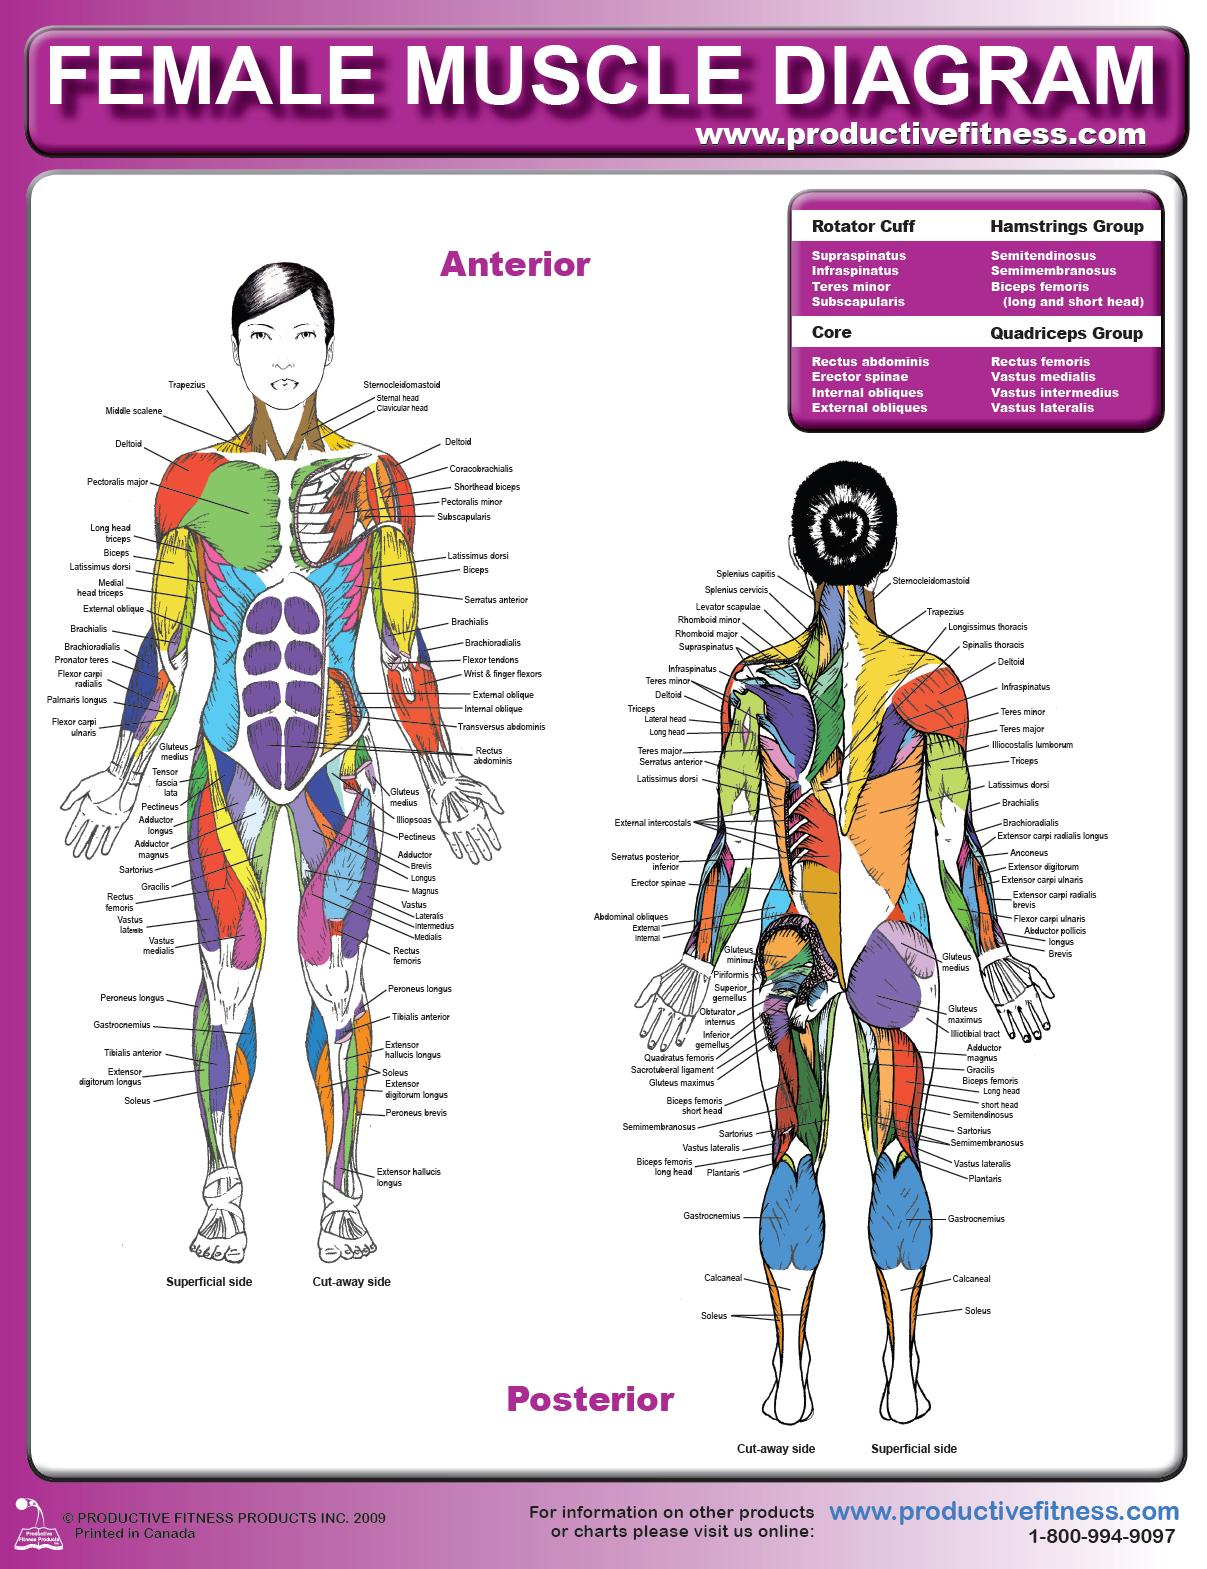 female muscle diagram and definitions | jacki's blog, Muscles